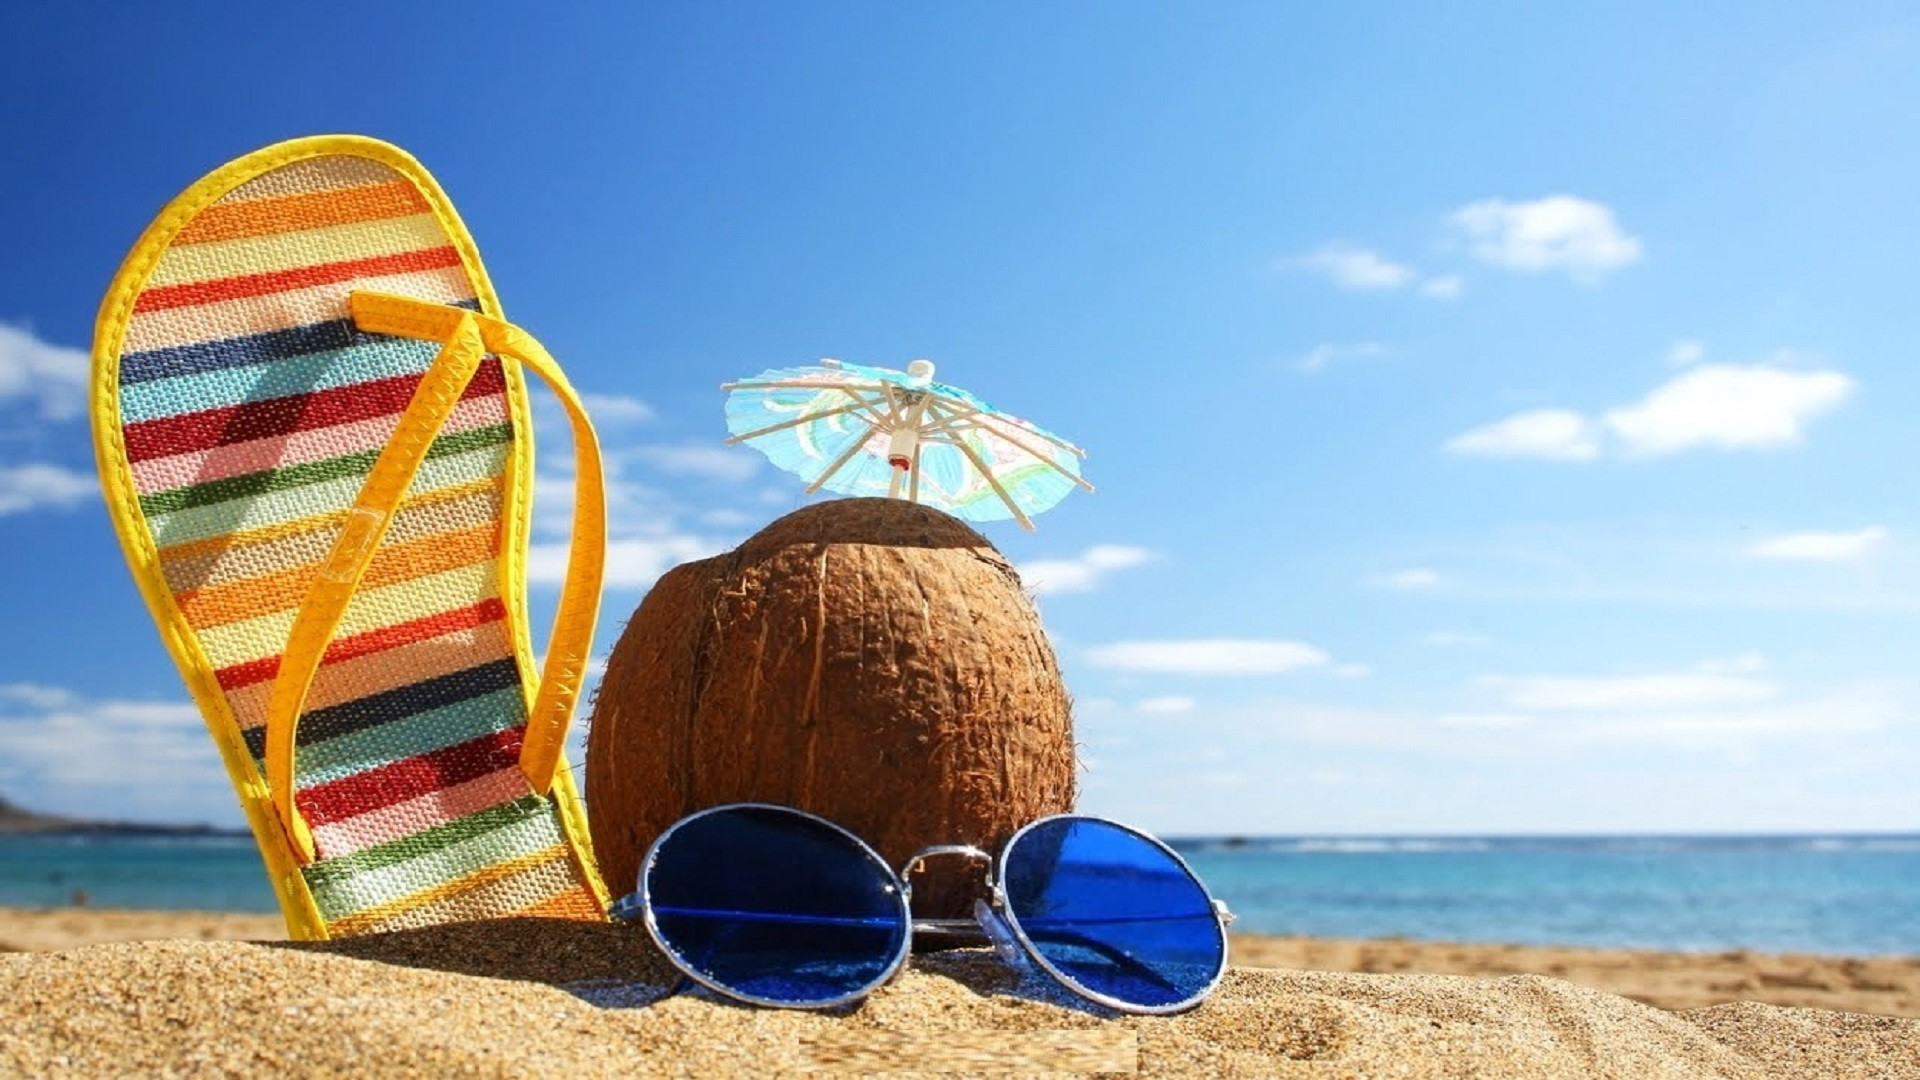 Res: 1920x1080, sea-glasses-shoes-summer-season-hd-wallpapers-free-